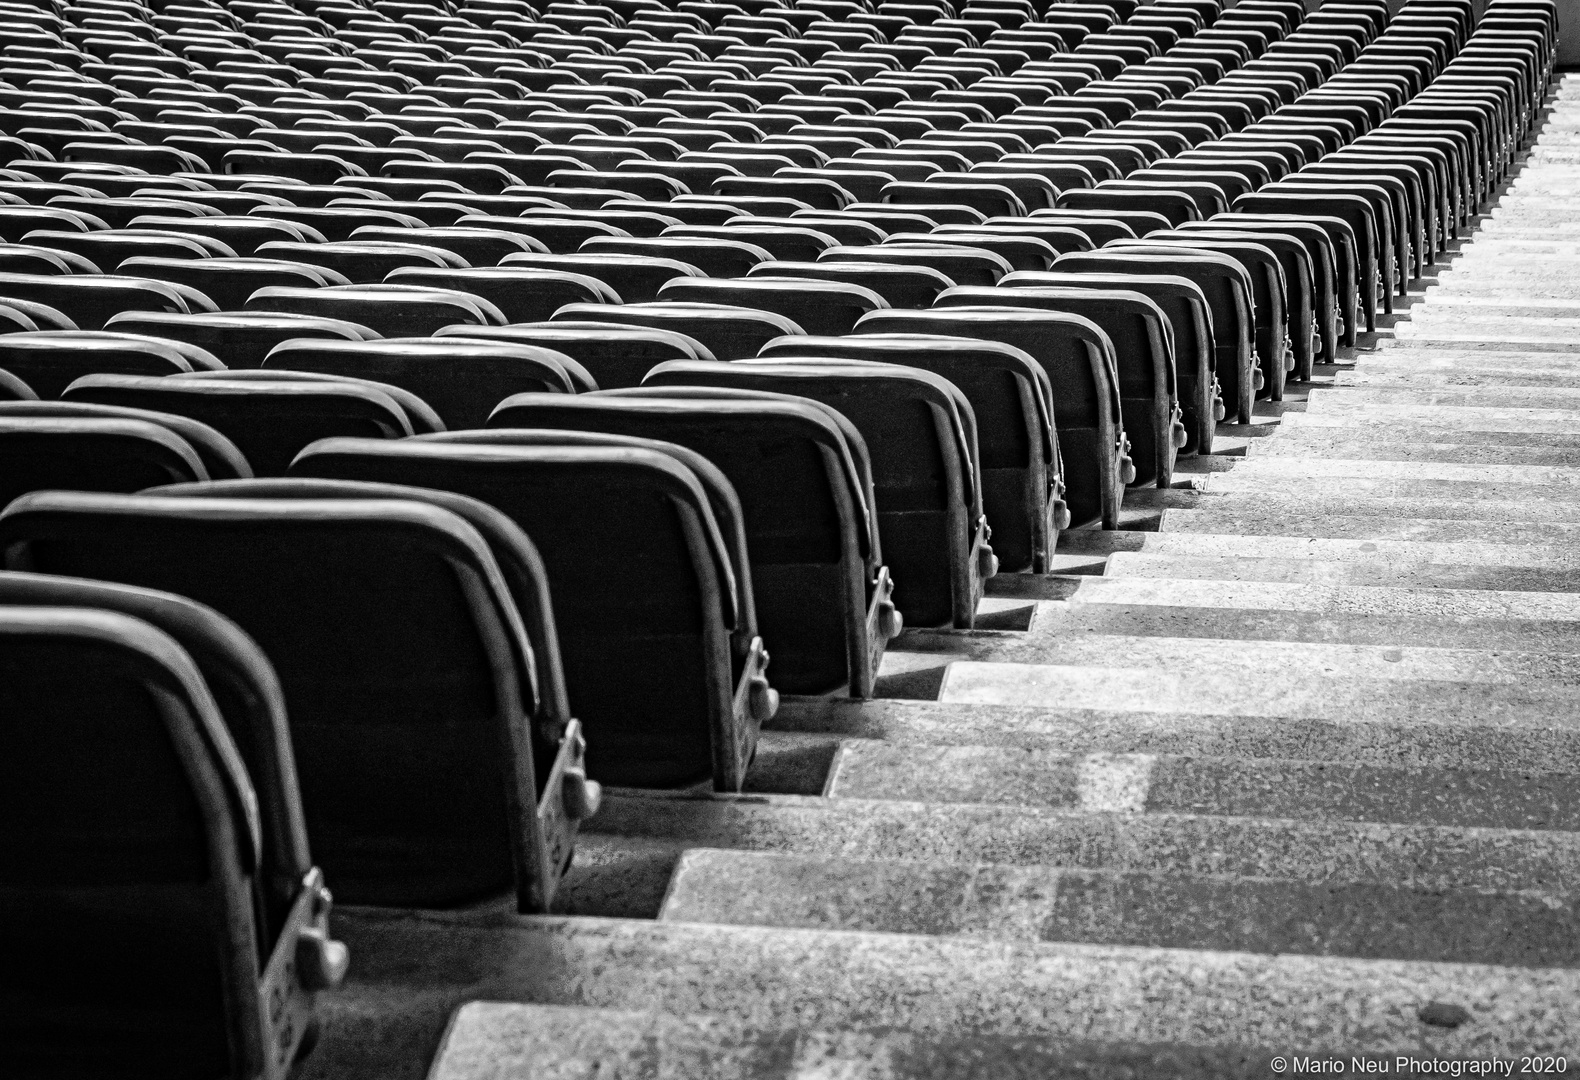 Rows of seats in BNW